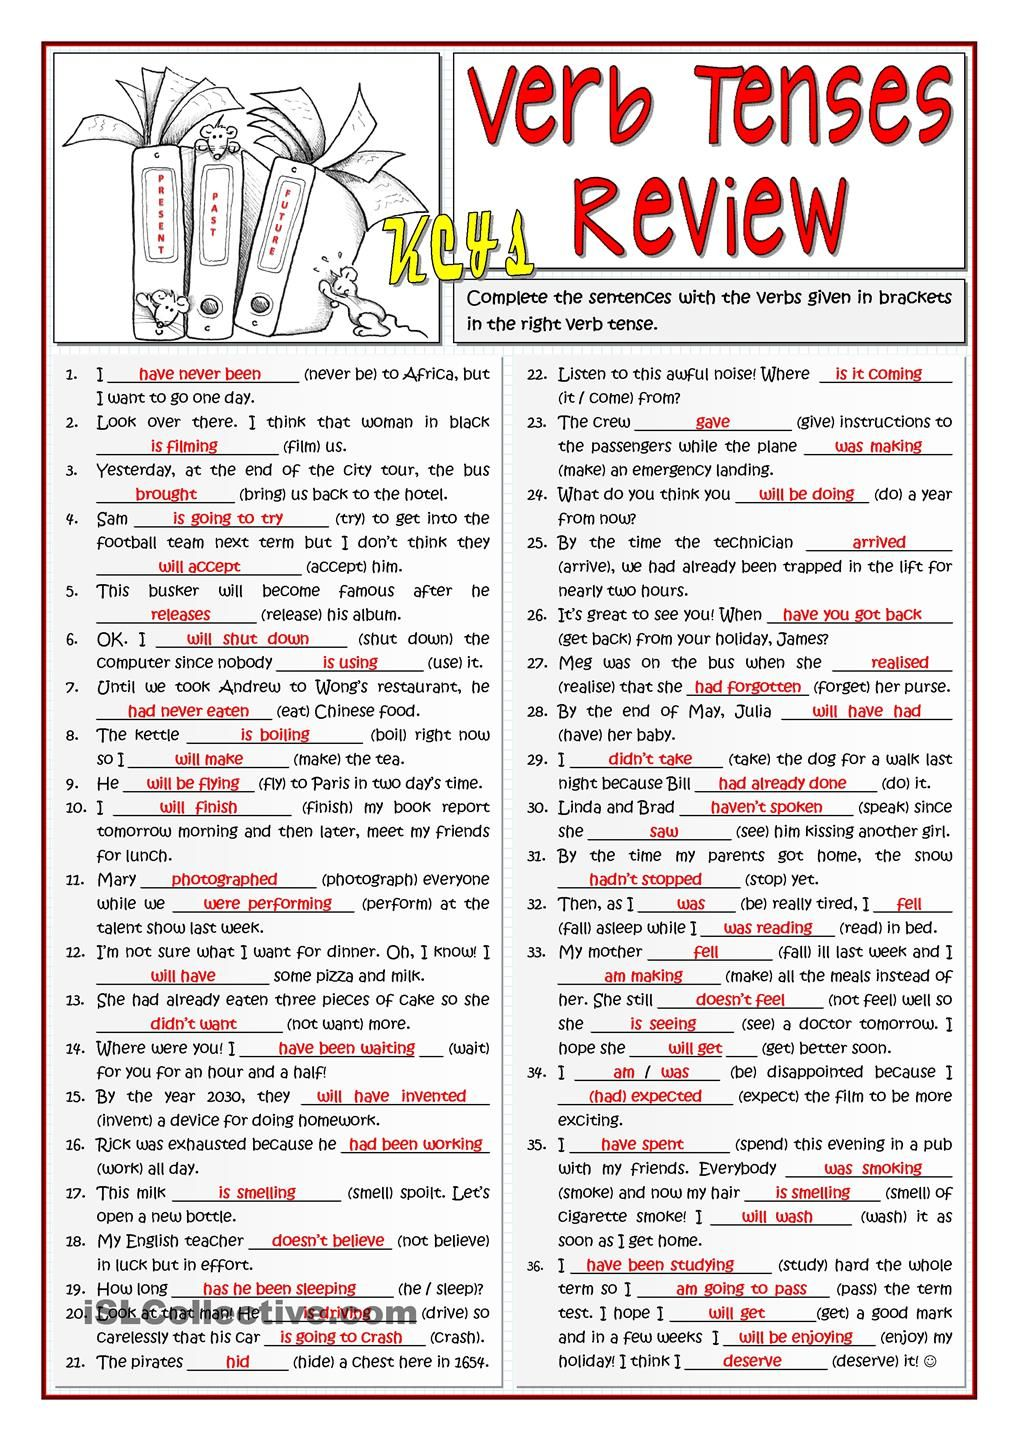 B1 VERB TENSES REVIEW   Material for English classes   Pinterest ...